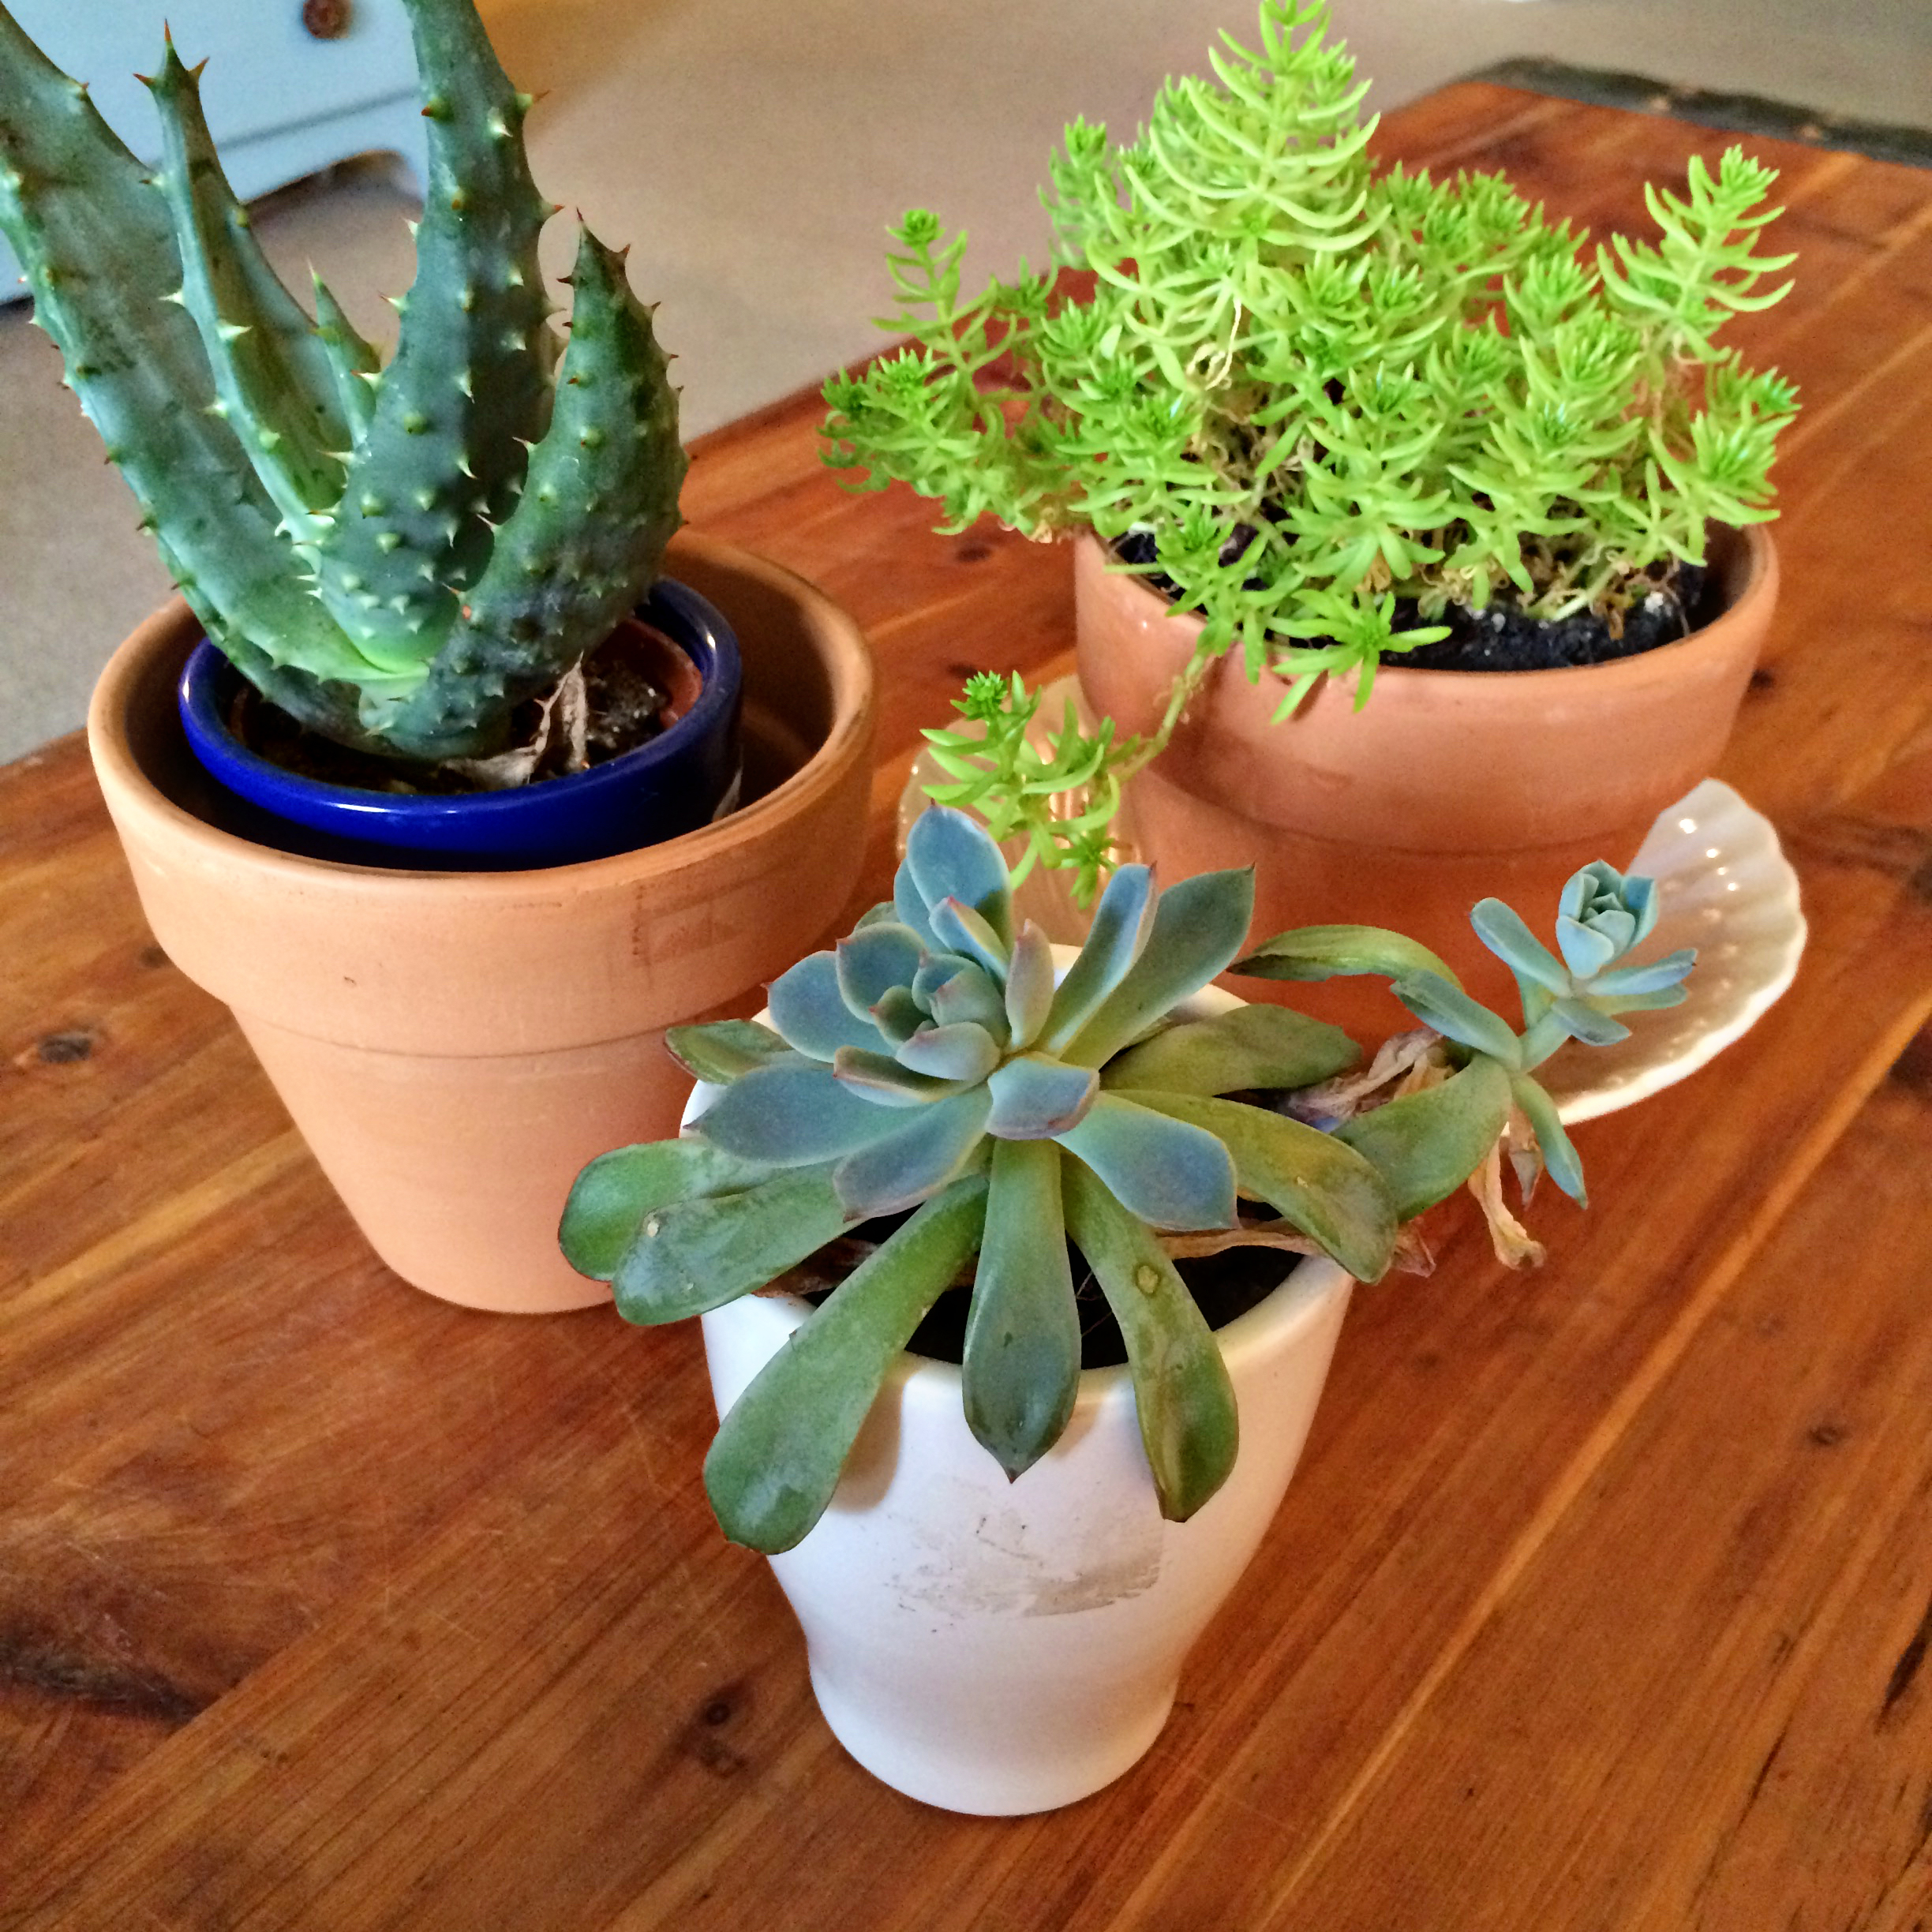 House plants for an office space